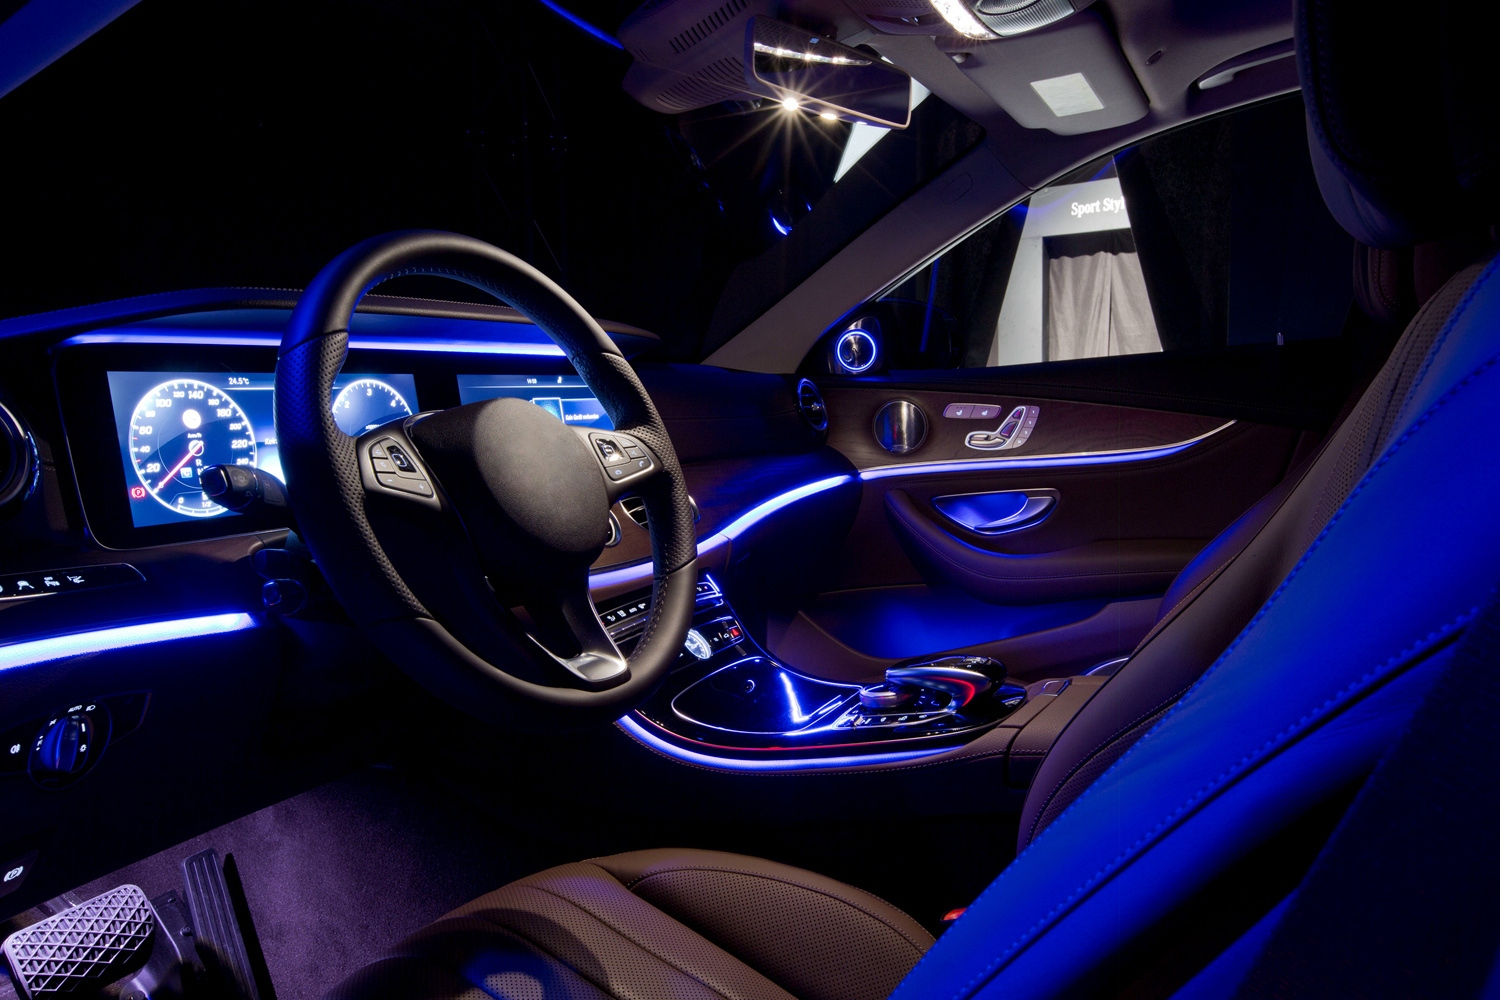 Car interior and atmosphere lights